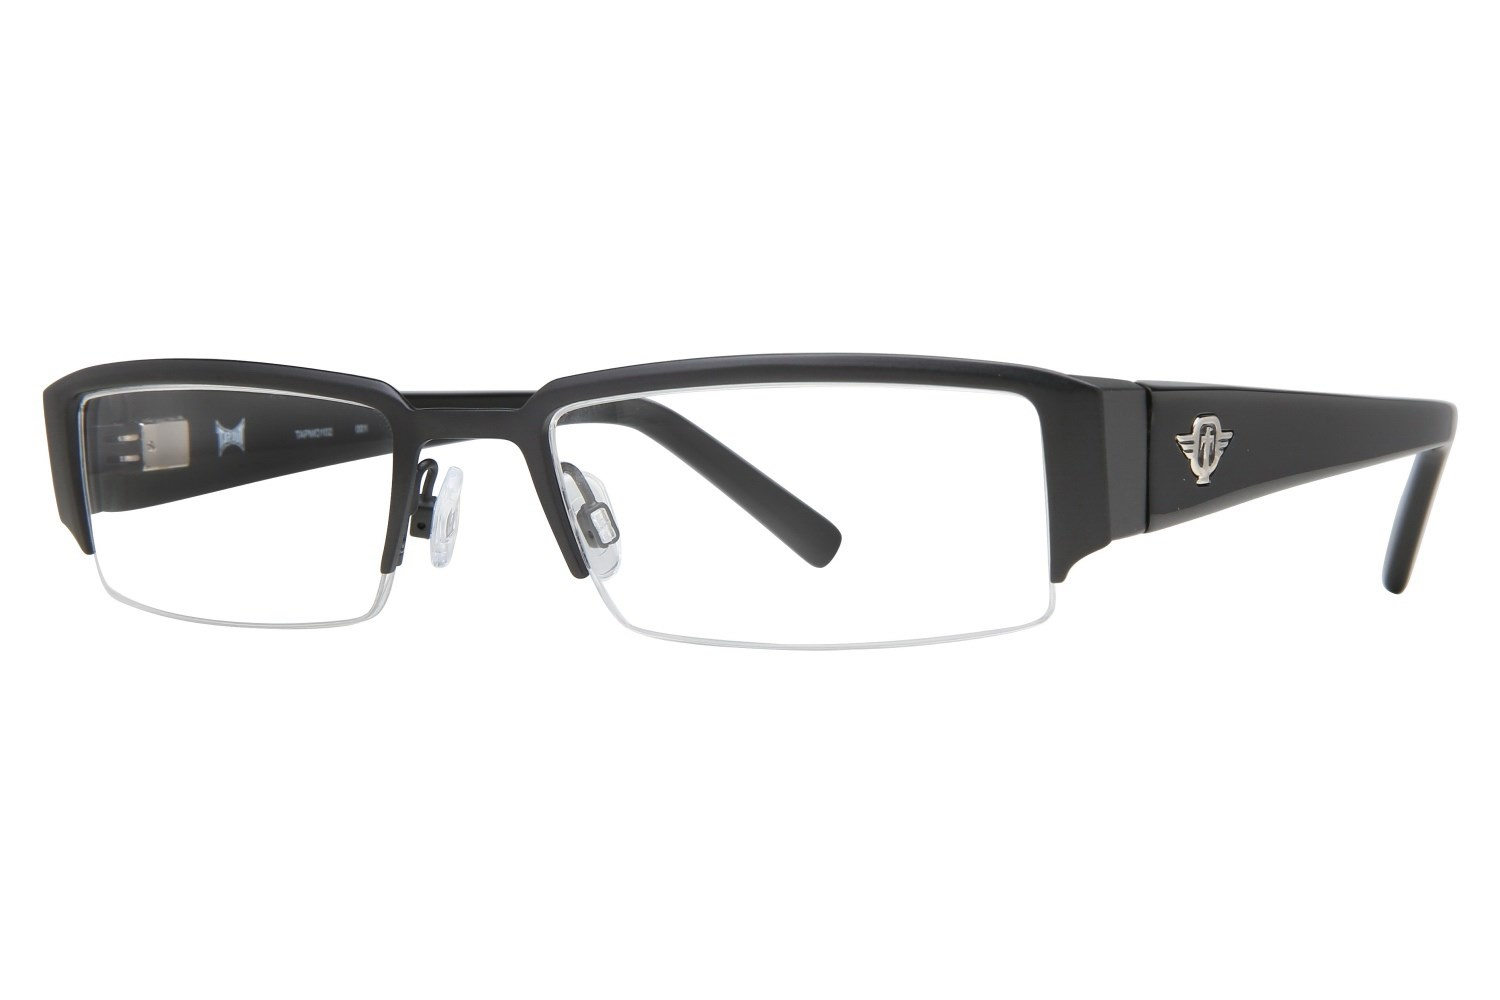 b00020ed3b Eyeglasses  Brand TapouT Eyewear glasses and contact lenses superstore